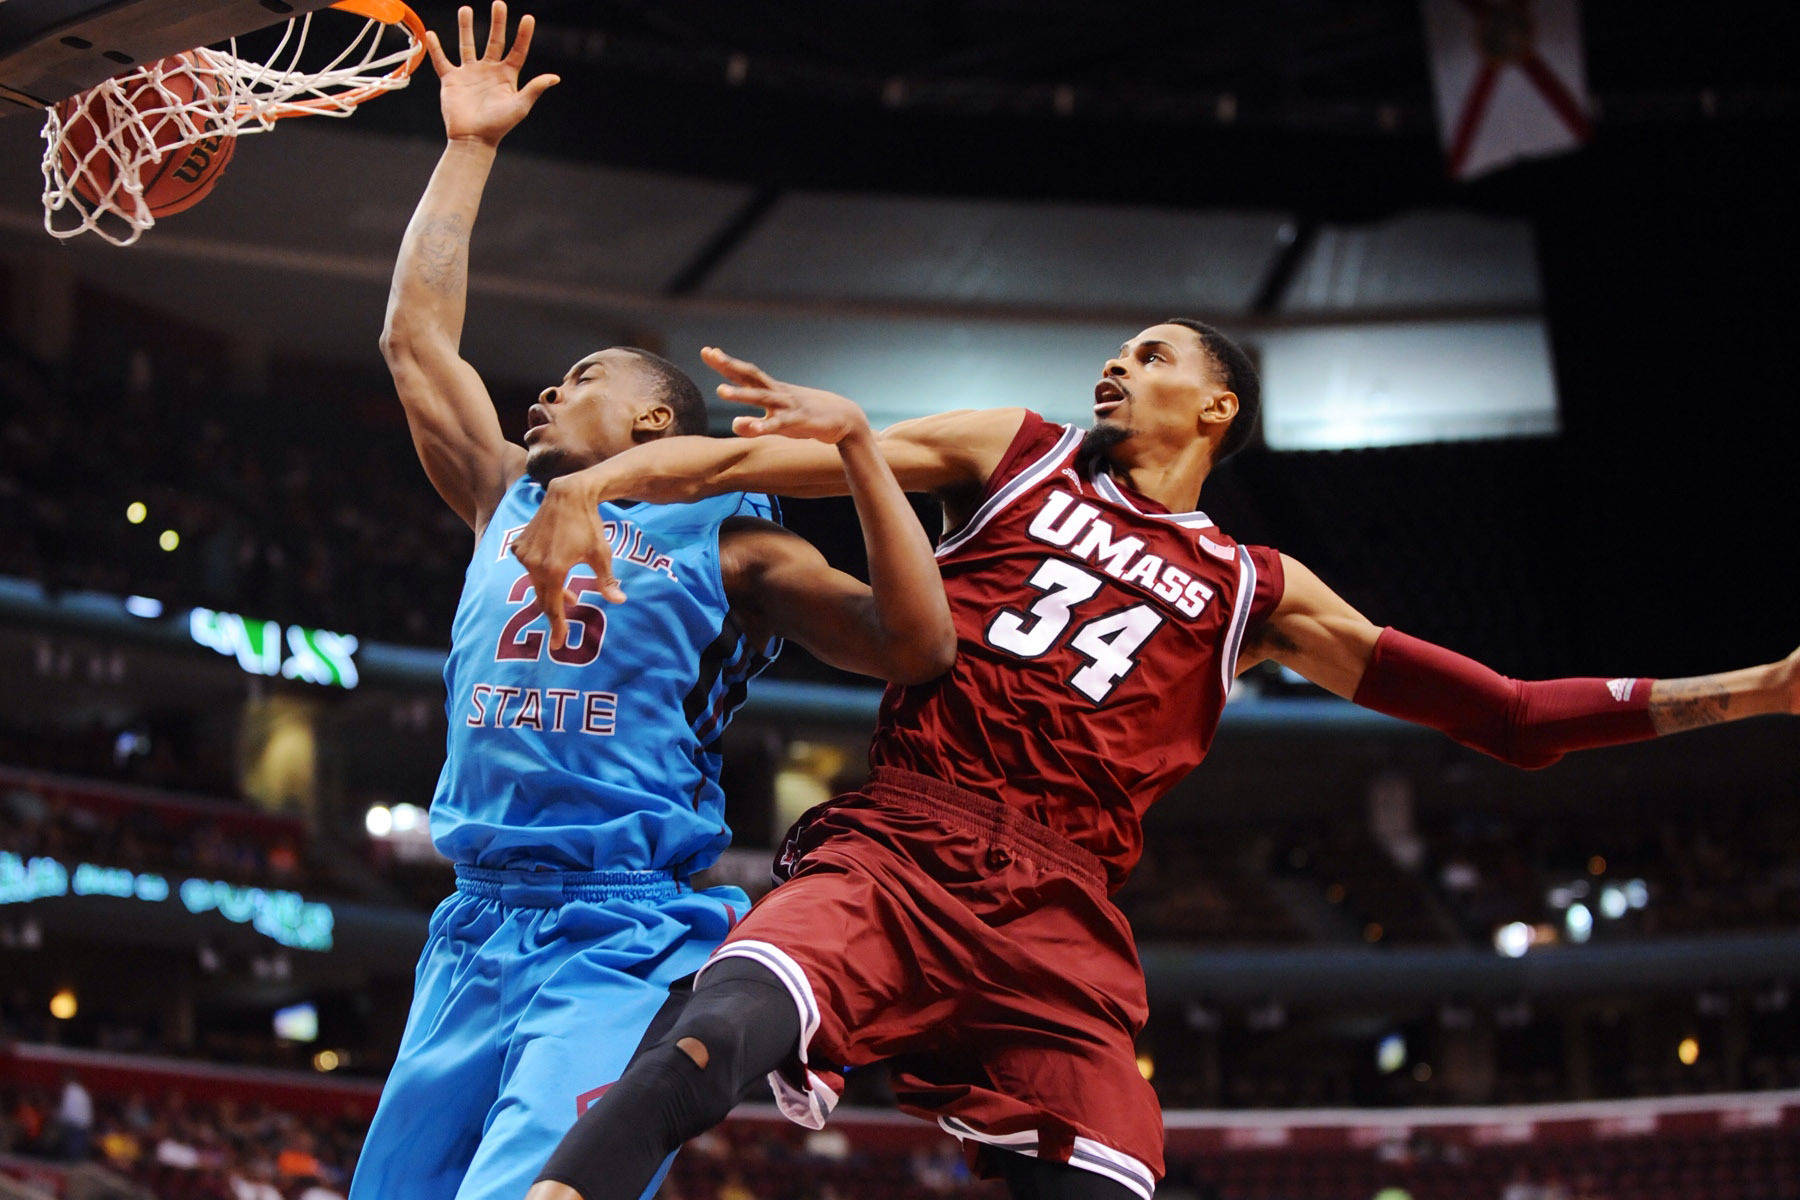 Dec 21, 2013; Sunrise, FL, USA; Florida State Seminoles guard Aaron Thomas (25) is fouled by Massachusetts Minutemen forward Raphiael Putney (34) during the first half at BB&T Center. Mandatory Credit: Steve Mitchell-USA TODAY Sports